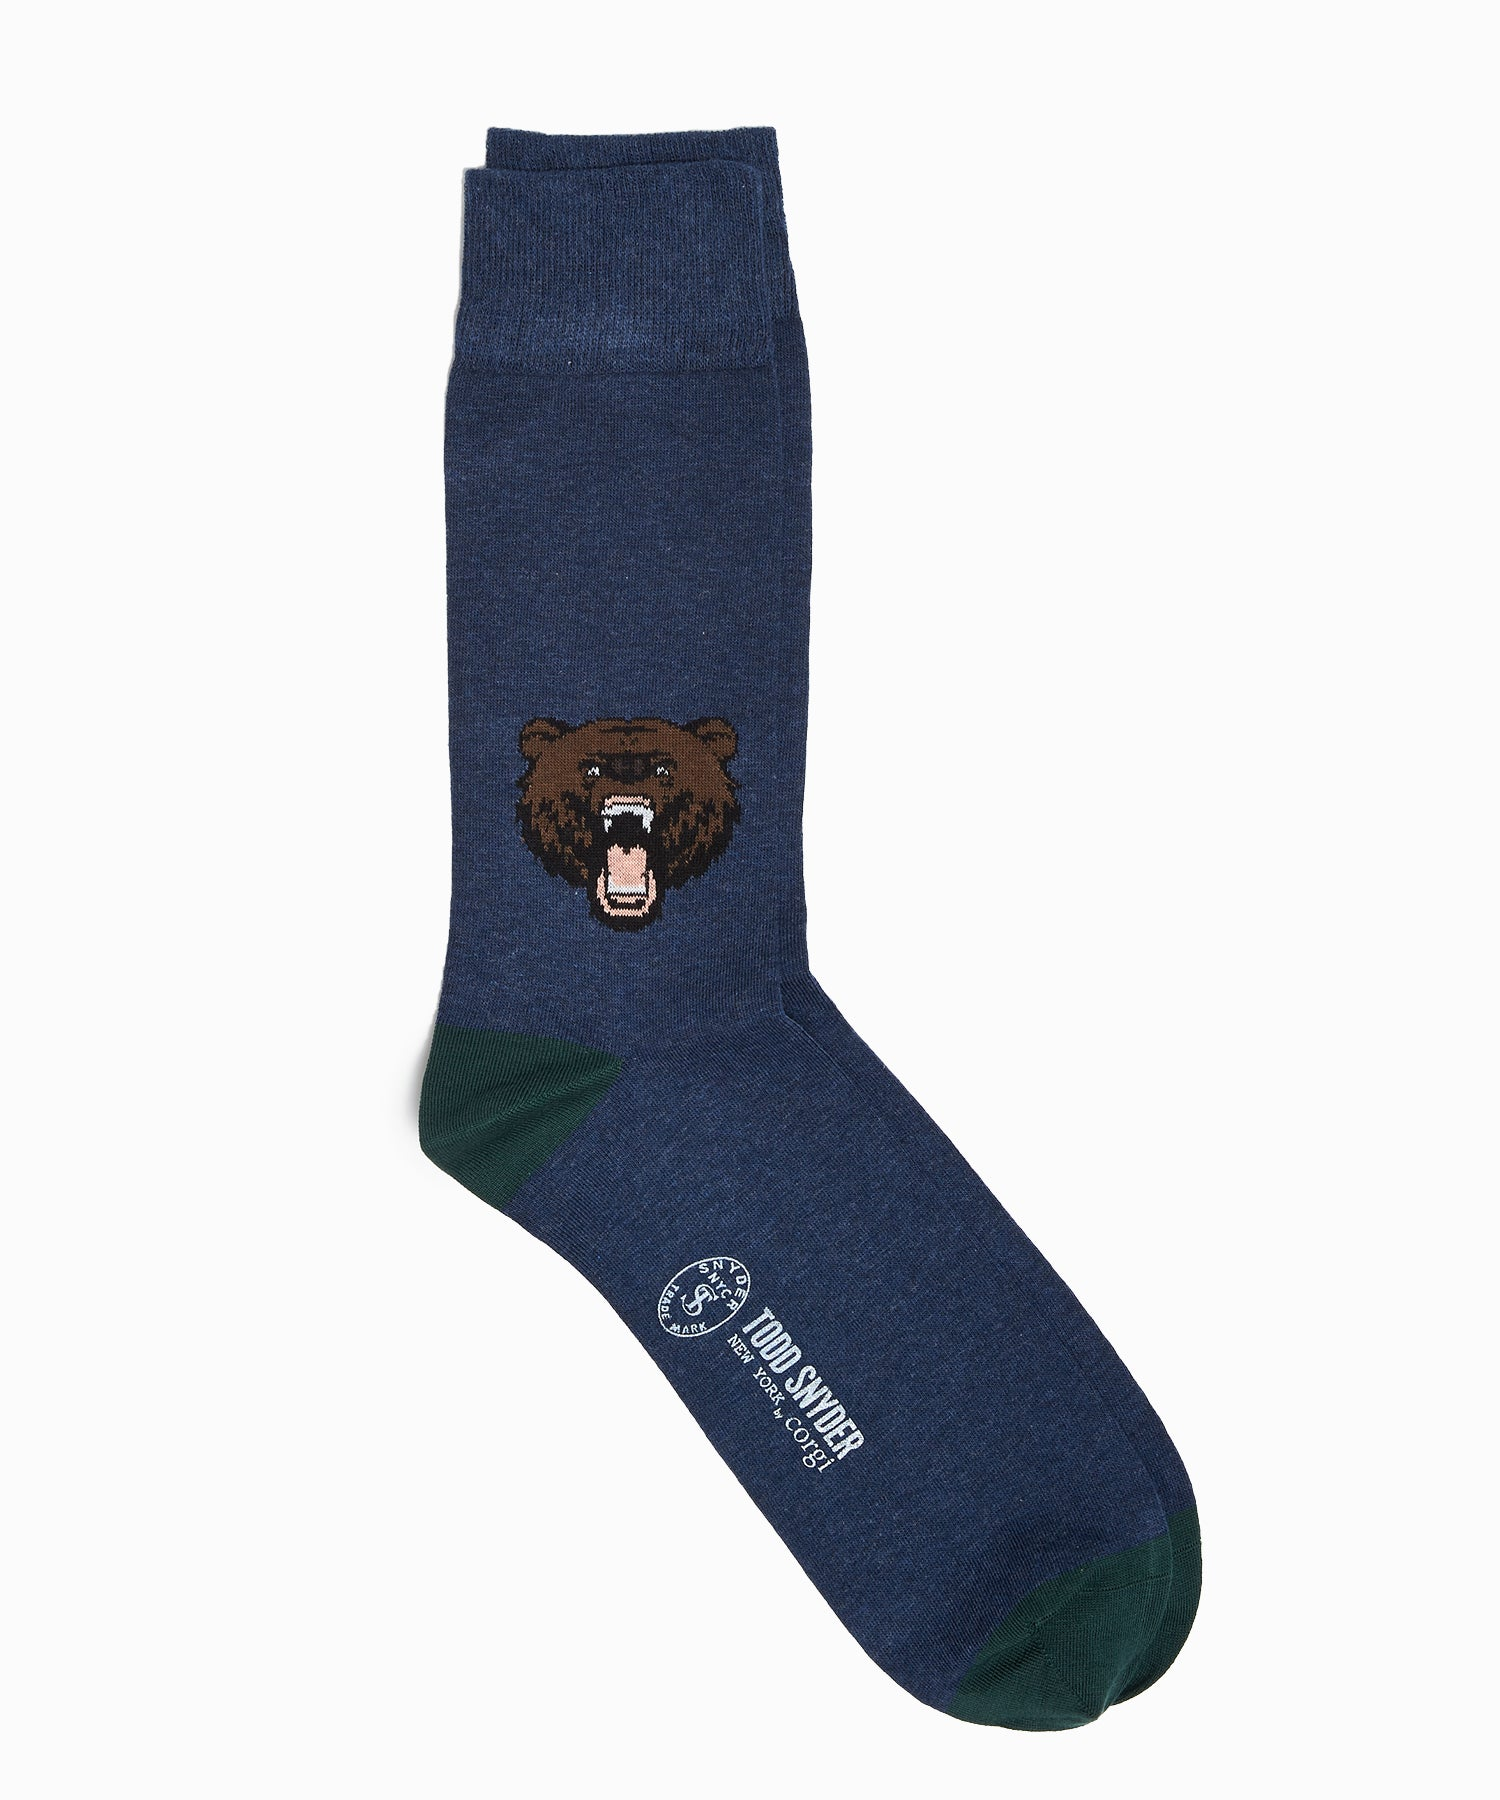 Corgi Angry Bear Motif Cotton Blend Socks in Denim